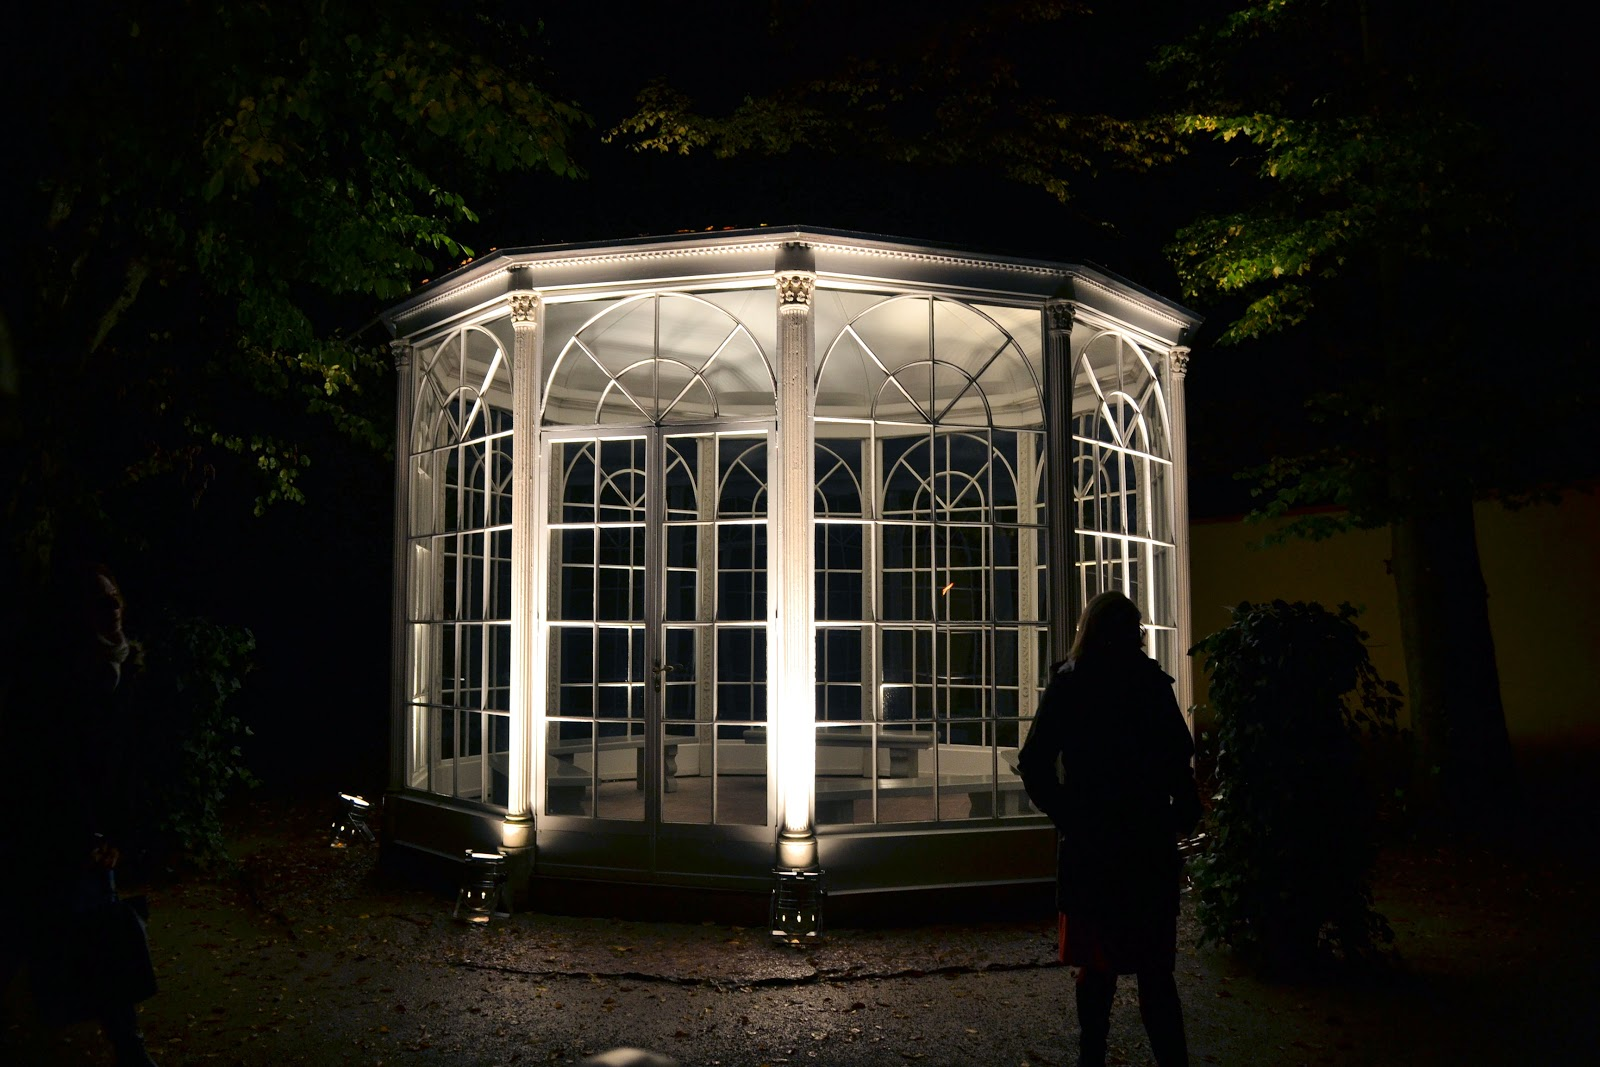 'The Sound of Music' gazebo, now at the Hellbrunn Palace, was originally located at the Leopoldskron Palace during film production.